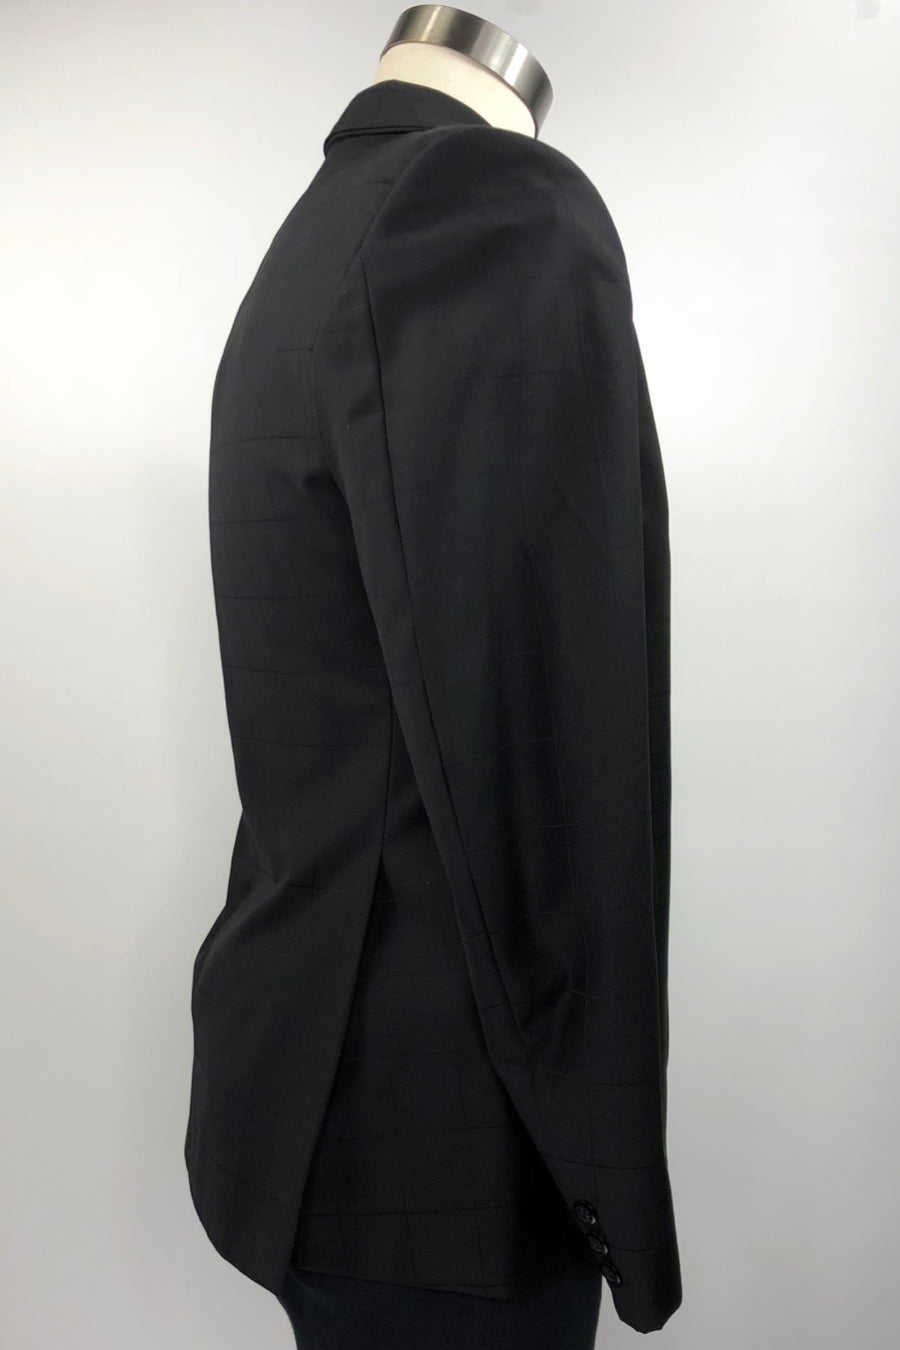 Grand Prix Hunt Coat in Black Check - Men's 40R